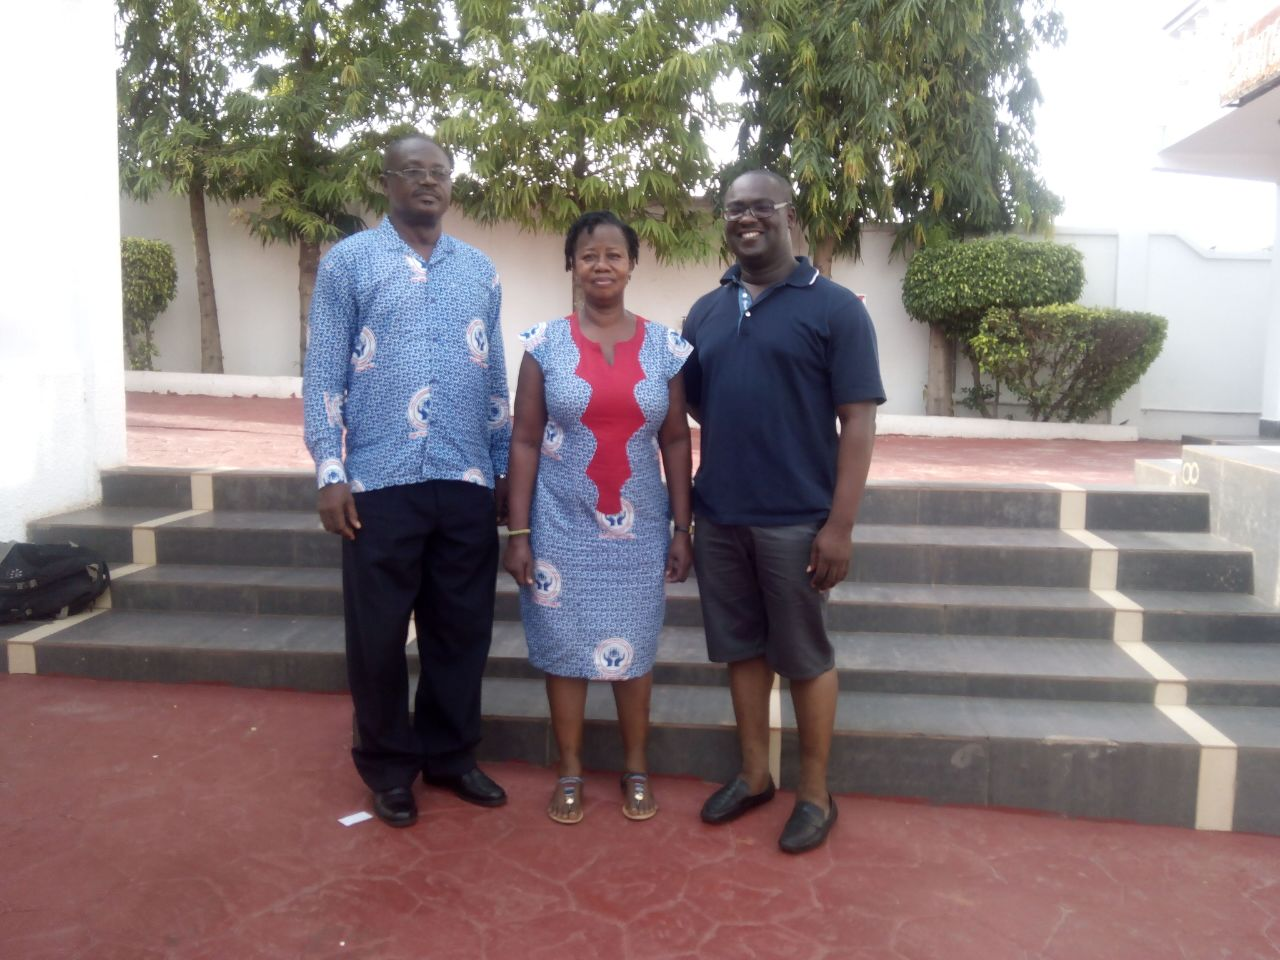 From left to right – Mr George Sencherey, Mrs Beatrice Antwi, Mr Kofi Boamah